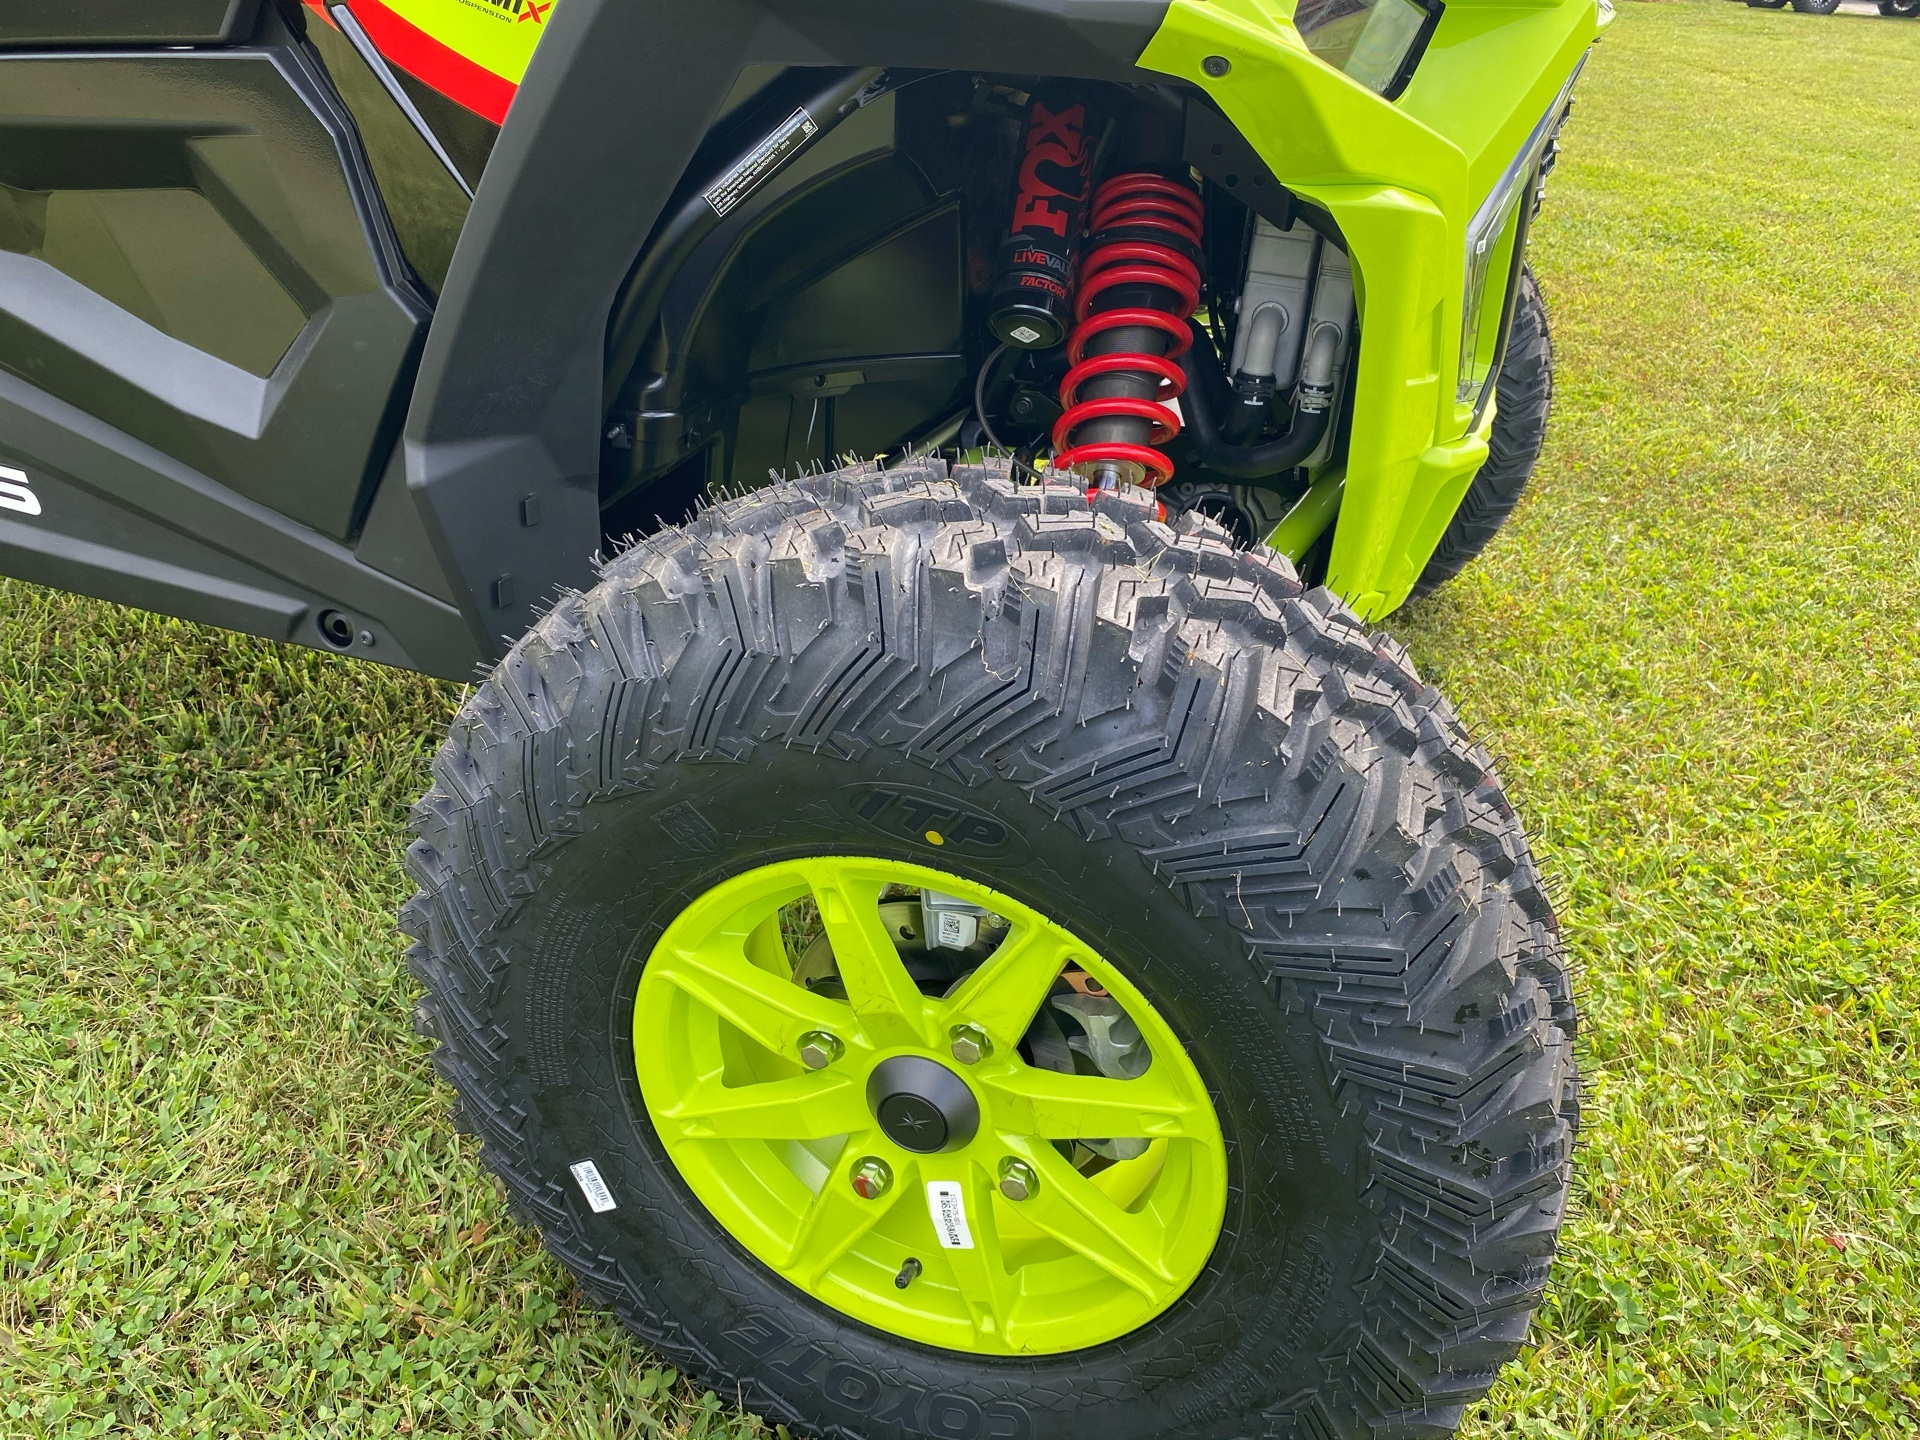 2021 Polaris RZR Turbo S Lifted Lime LE in Statesville, North Carolina - Photo 15